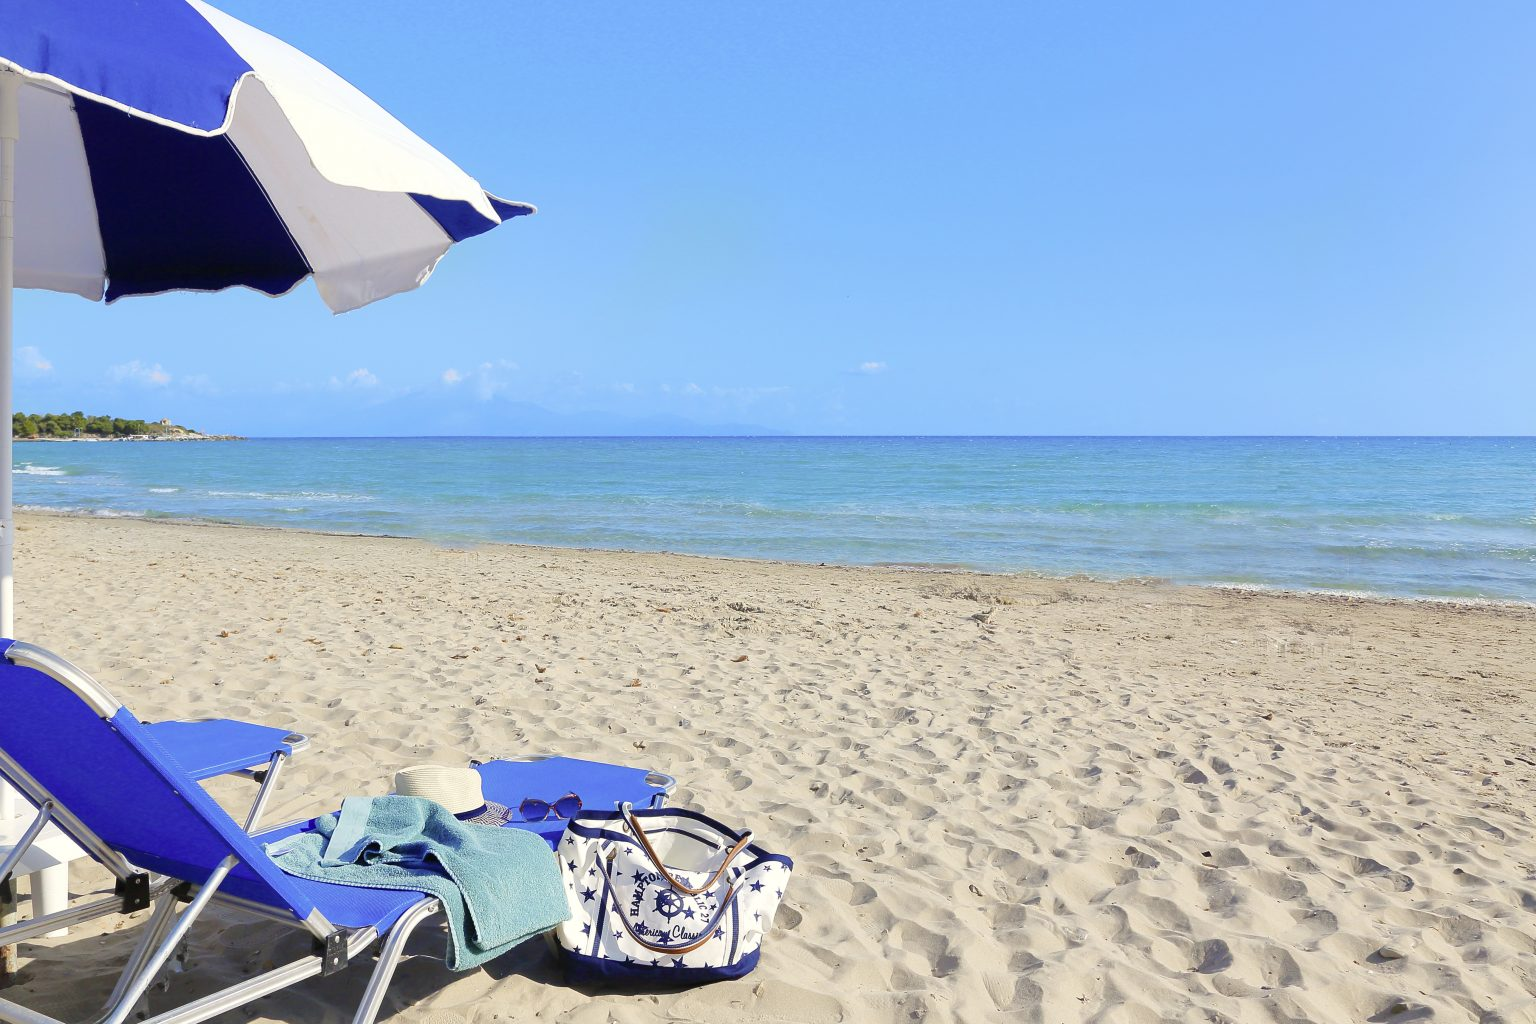 A sunbed and an umbrella overlooking the ocean